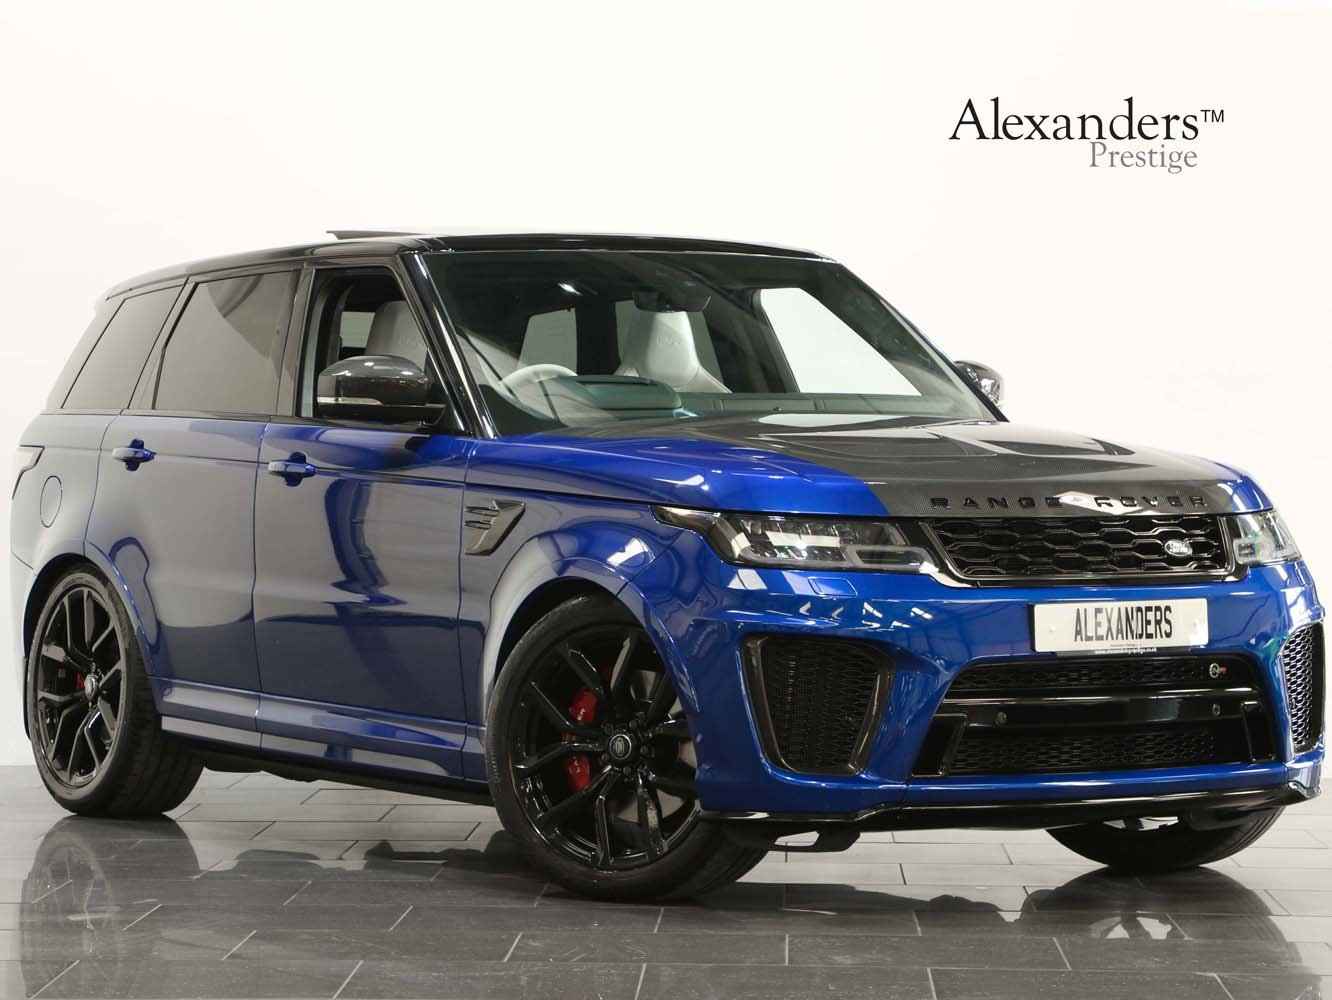 2018 18 68 RANGE ROVER 5.0 V8 SUPERCHARGED SVR AUTO For Sale (picture 1 of 6)